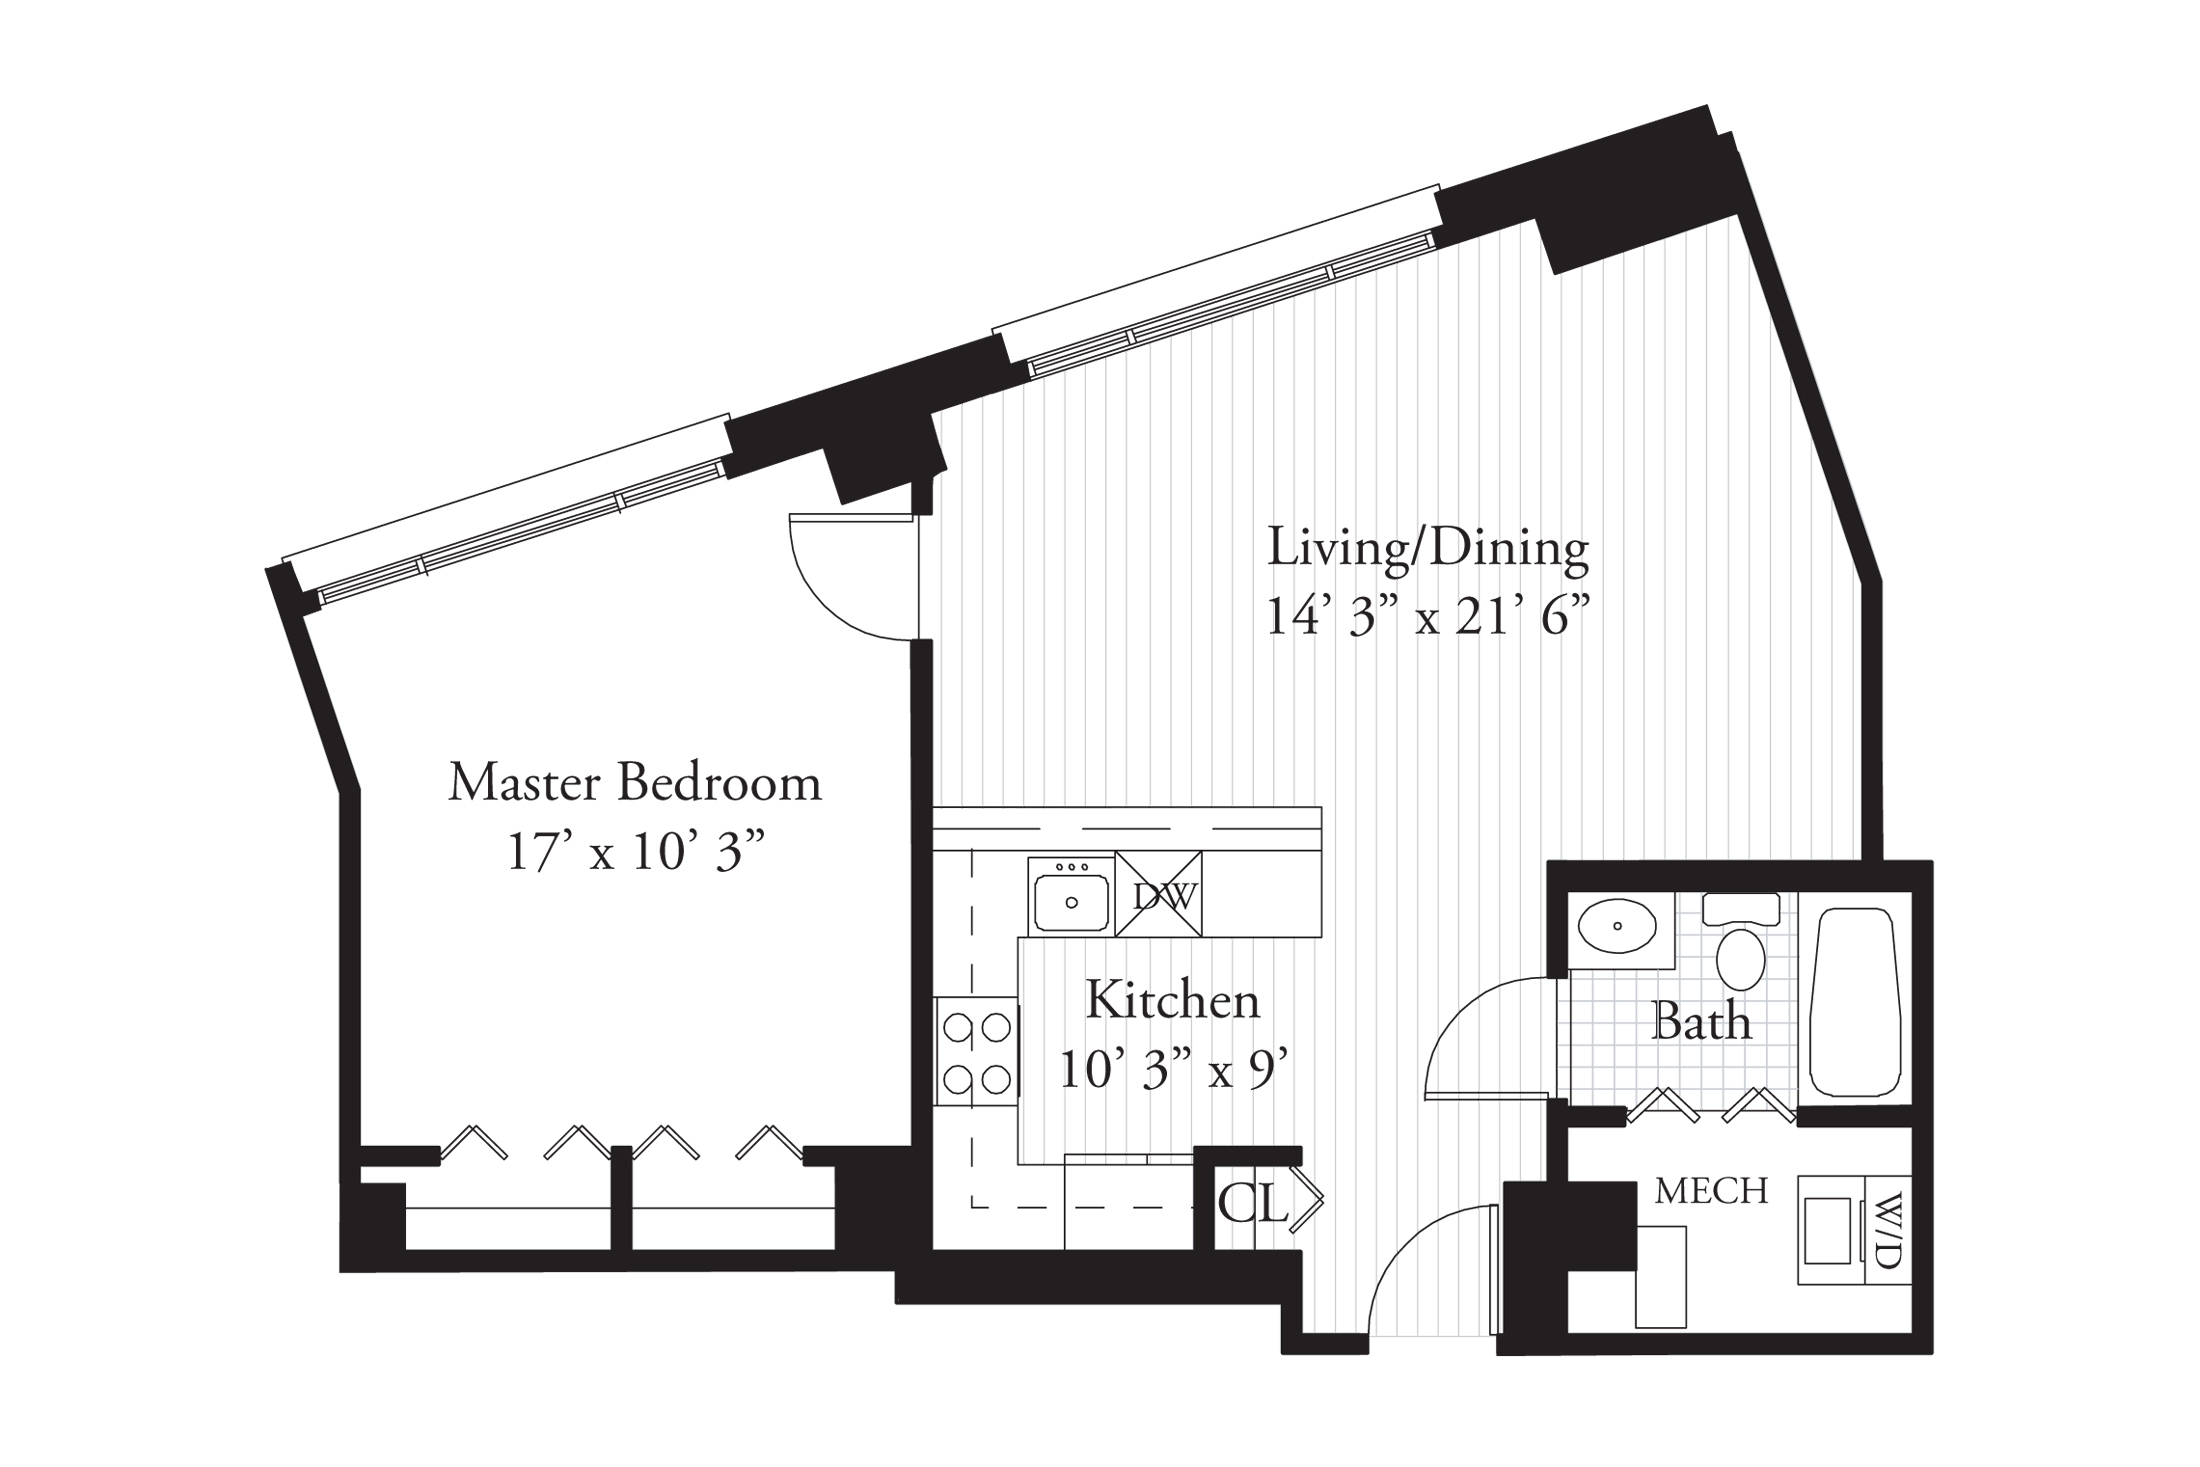 The cheapest loft in Chicago?